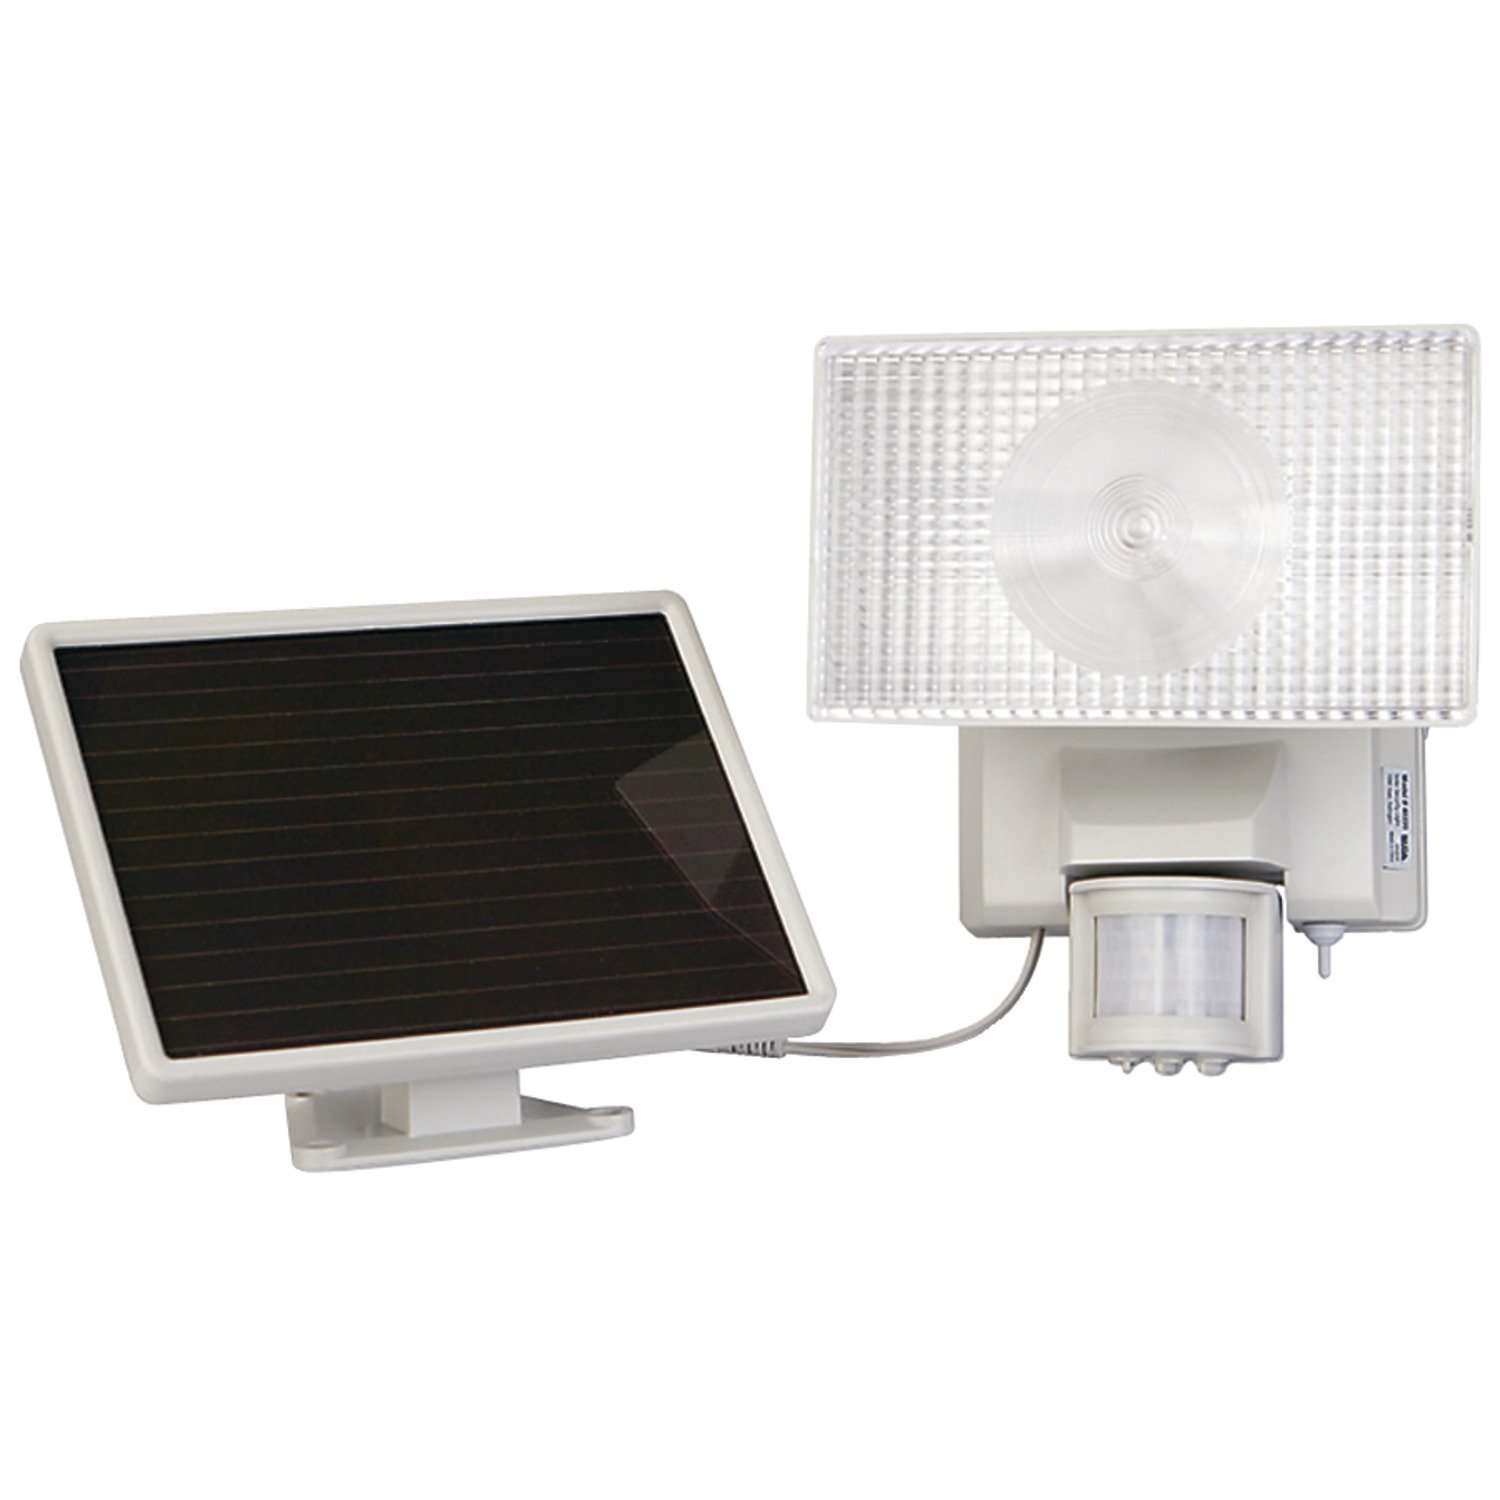 ultra light floodlight min eaa diy lowest solar link security prices lighting led